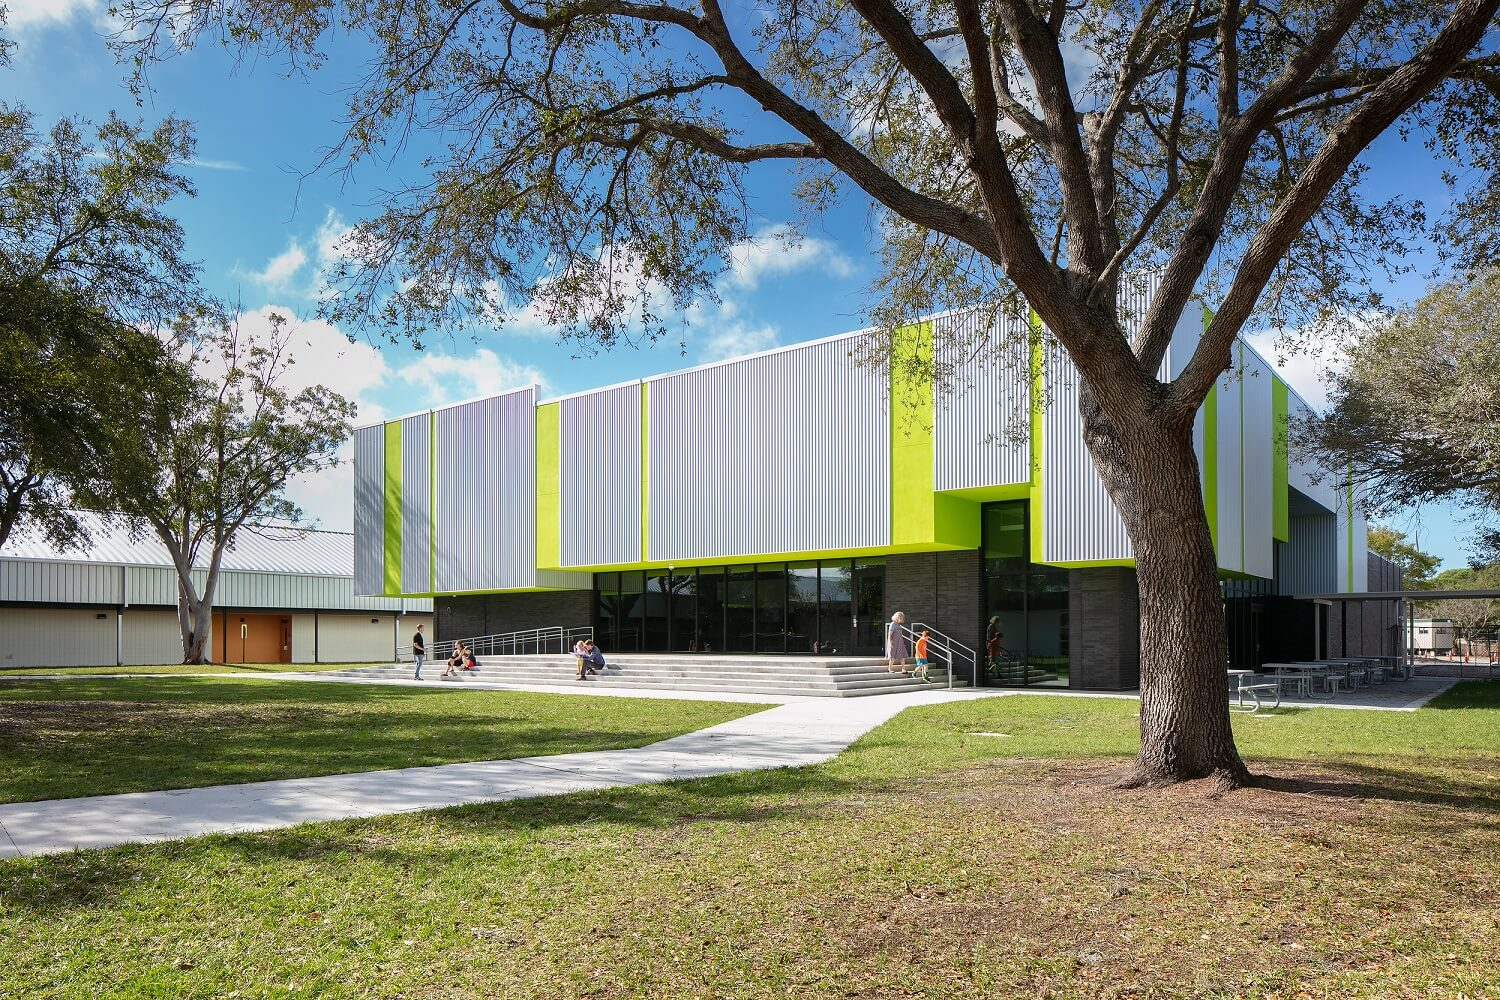 Brentwood Elementary Cafetorium | Jon F. Swift Construction